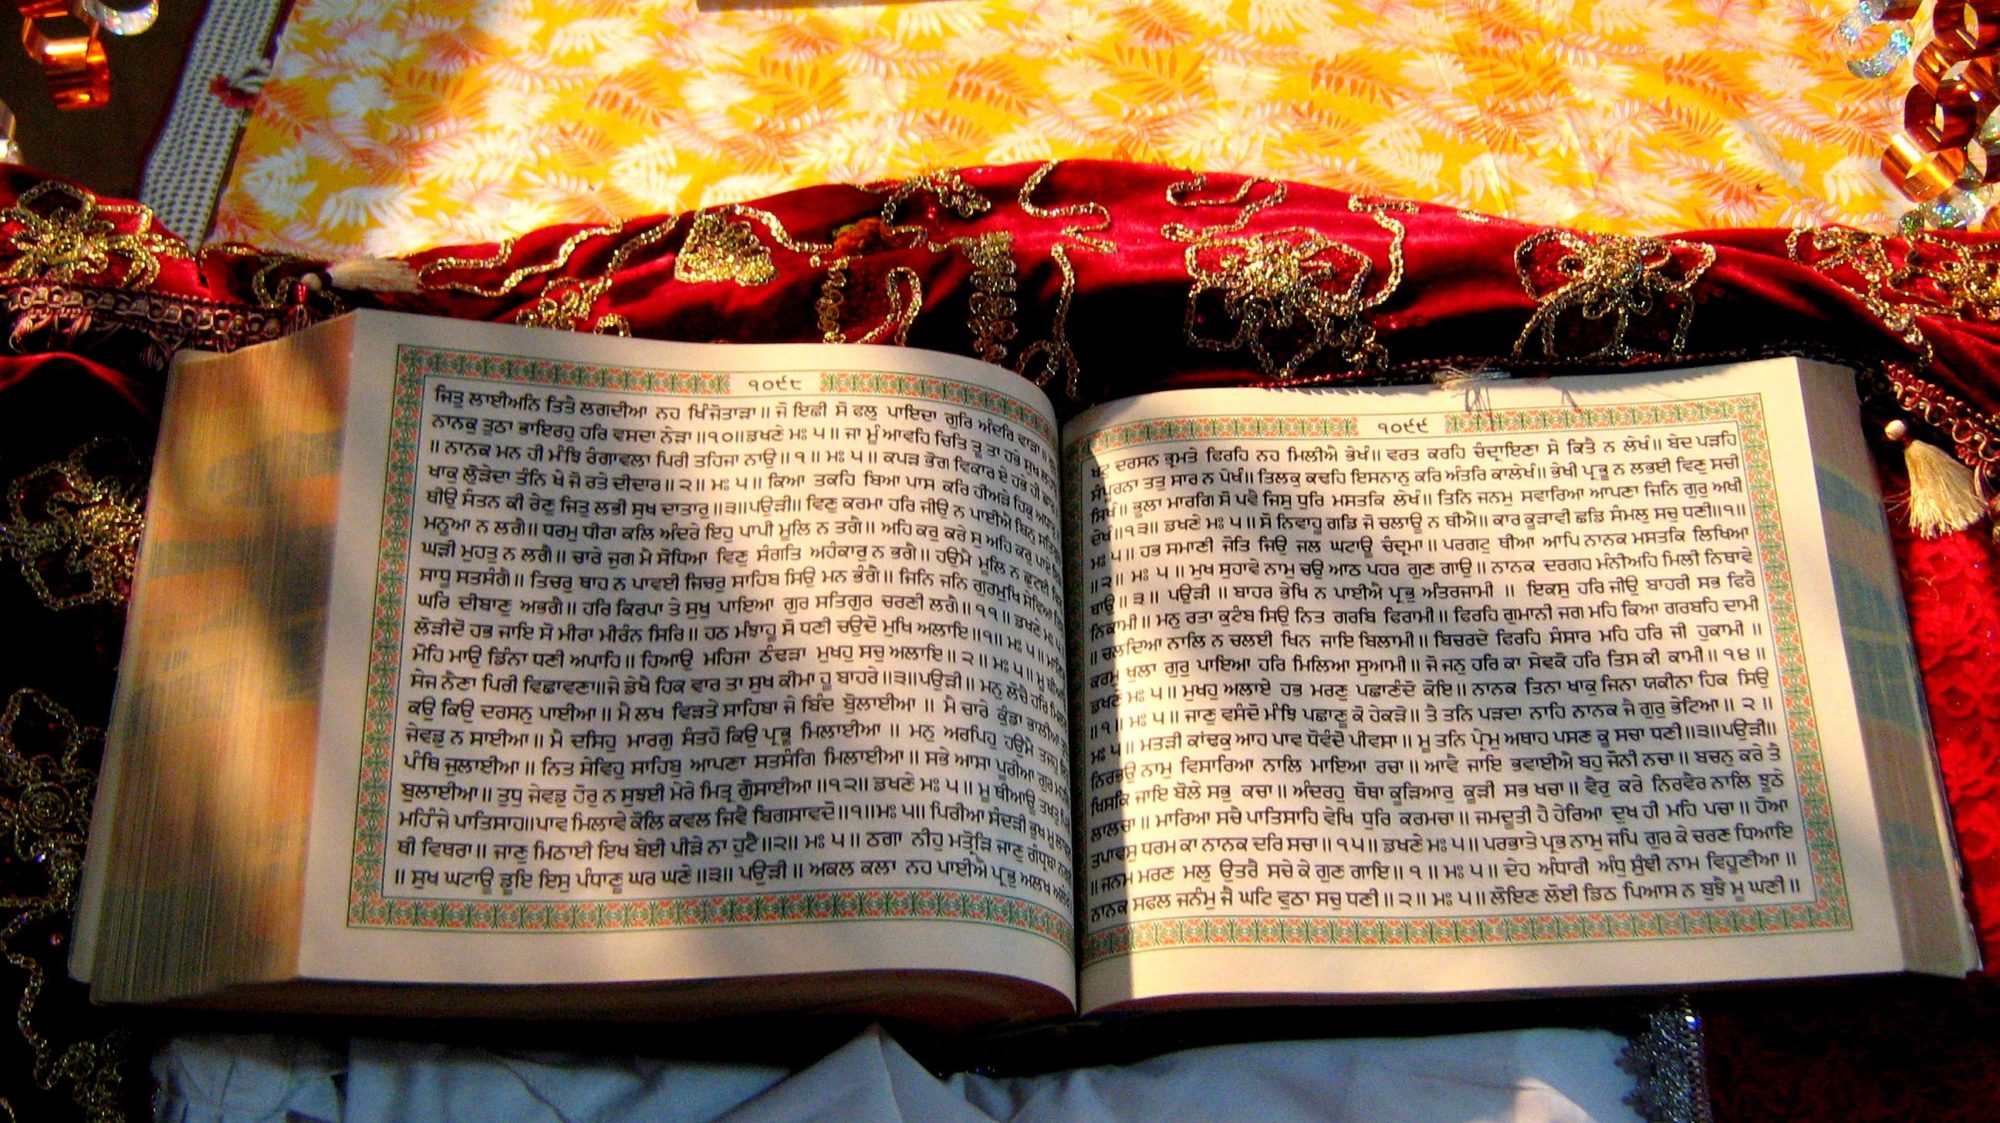 Does Guru Granth Sahib Describe Depression?